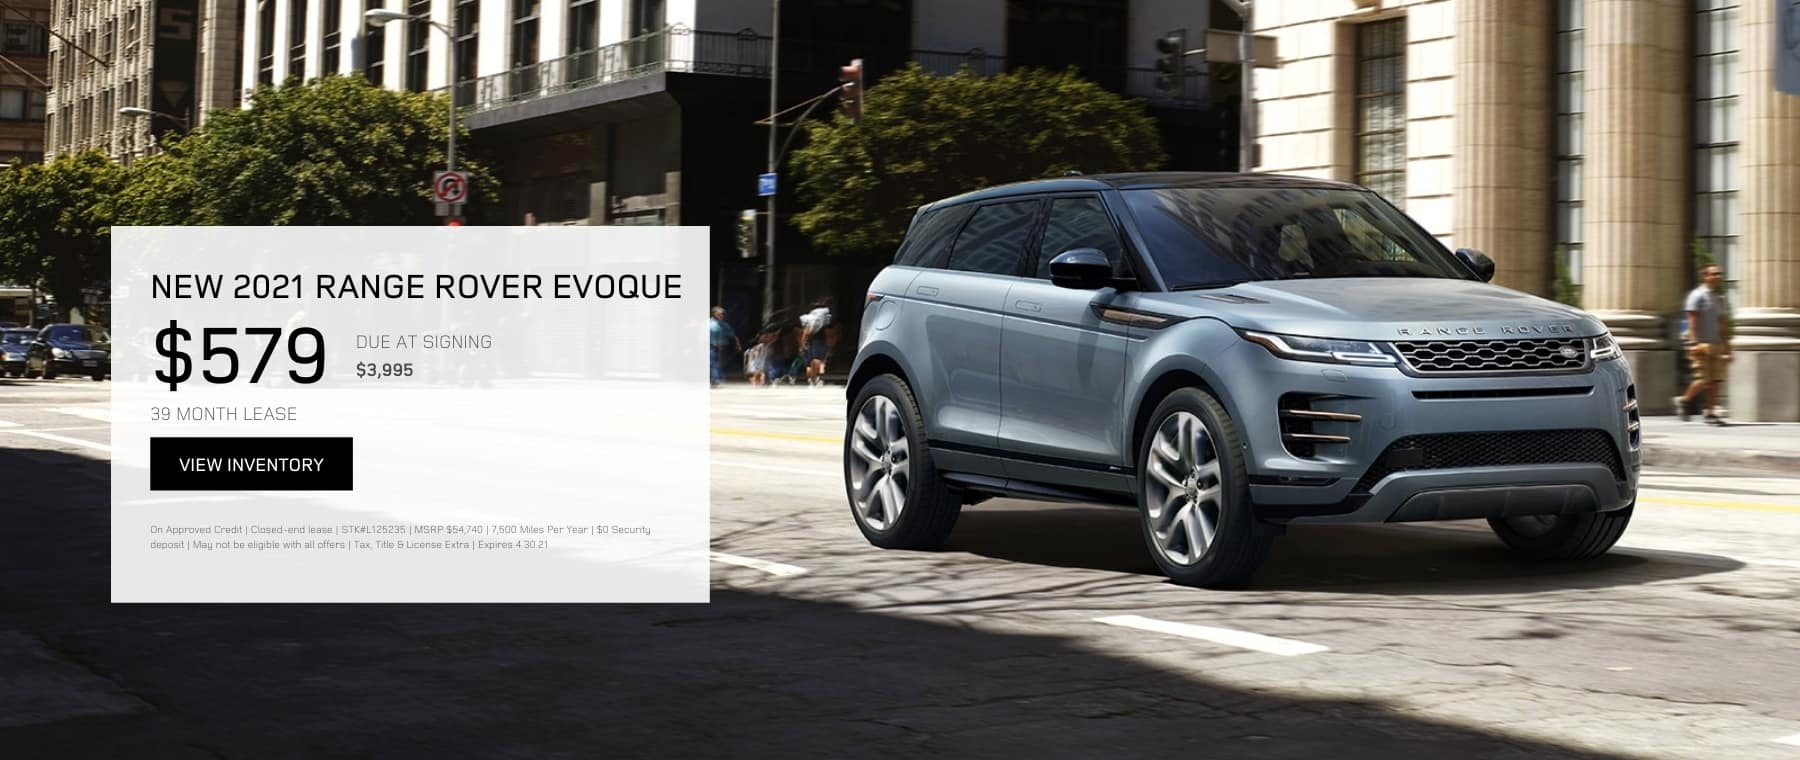 APRIL EVOQUE OFFER